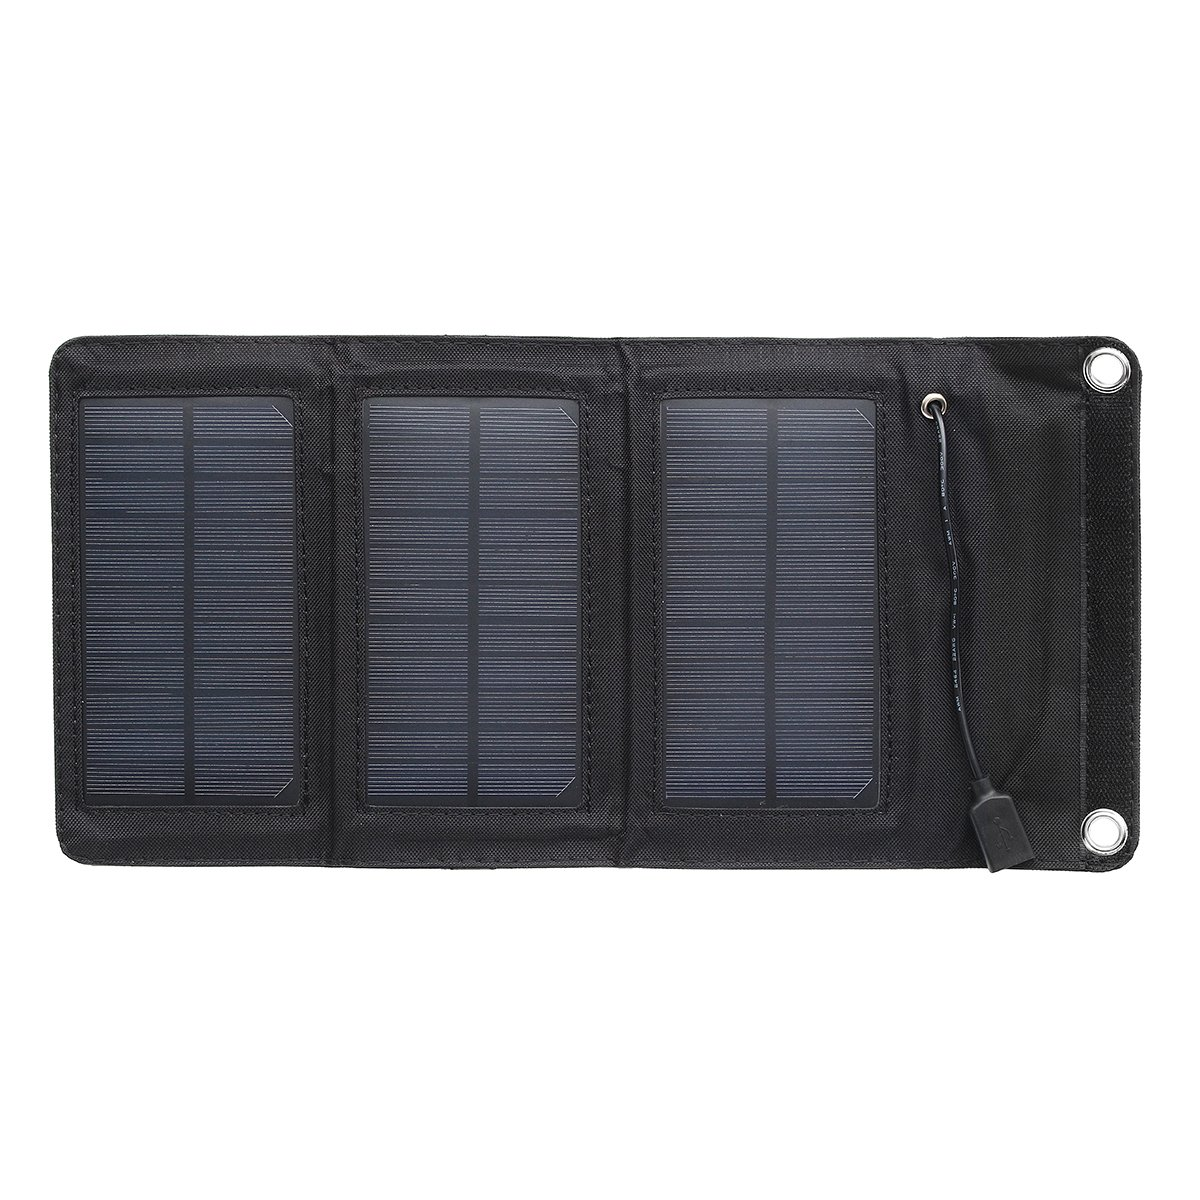 Movable Jury - 5v Portable Solar Panel Outdoor Travel Foldable Bank Usb Port - Dialog Box Instrument Takeout Impanel Take-Away Empanel Board Outboard - 1PCs by Unknown (Image #3)